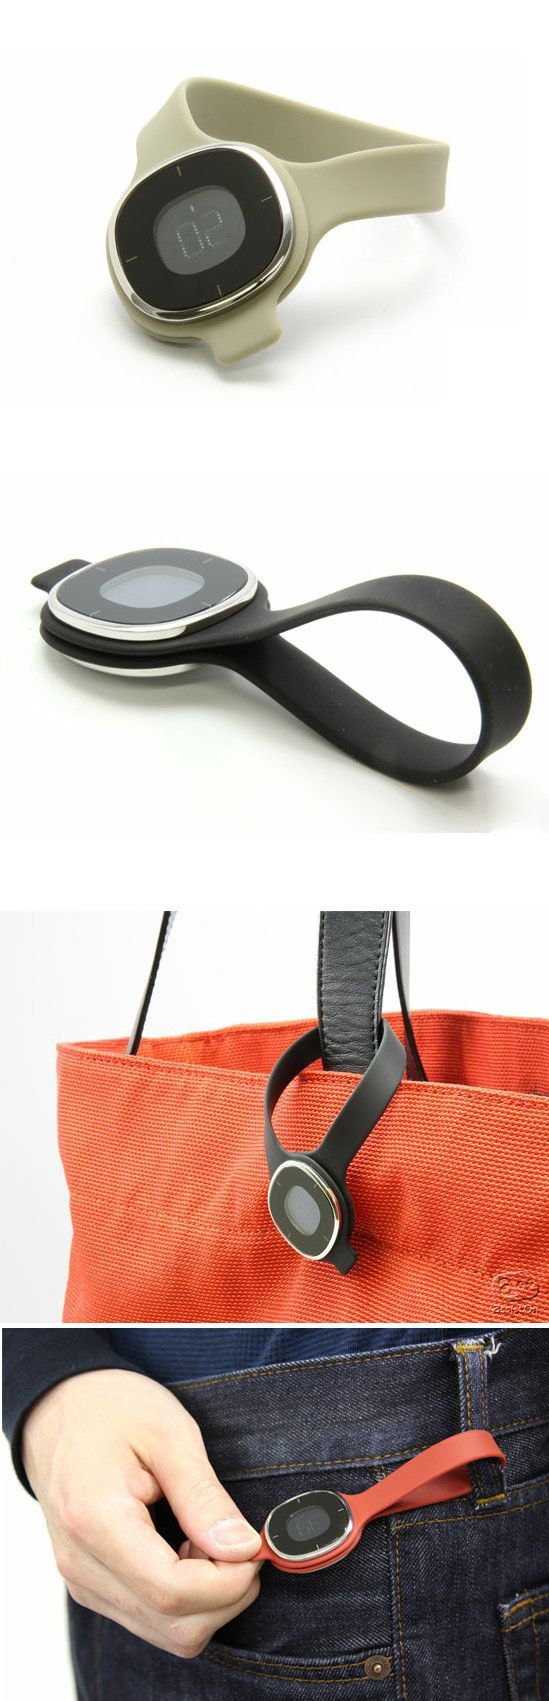 price as low as 19usd.get what you really want. and i was just thinking i need a new nice pair. enjoy your beach time with new sunglasses.